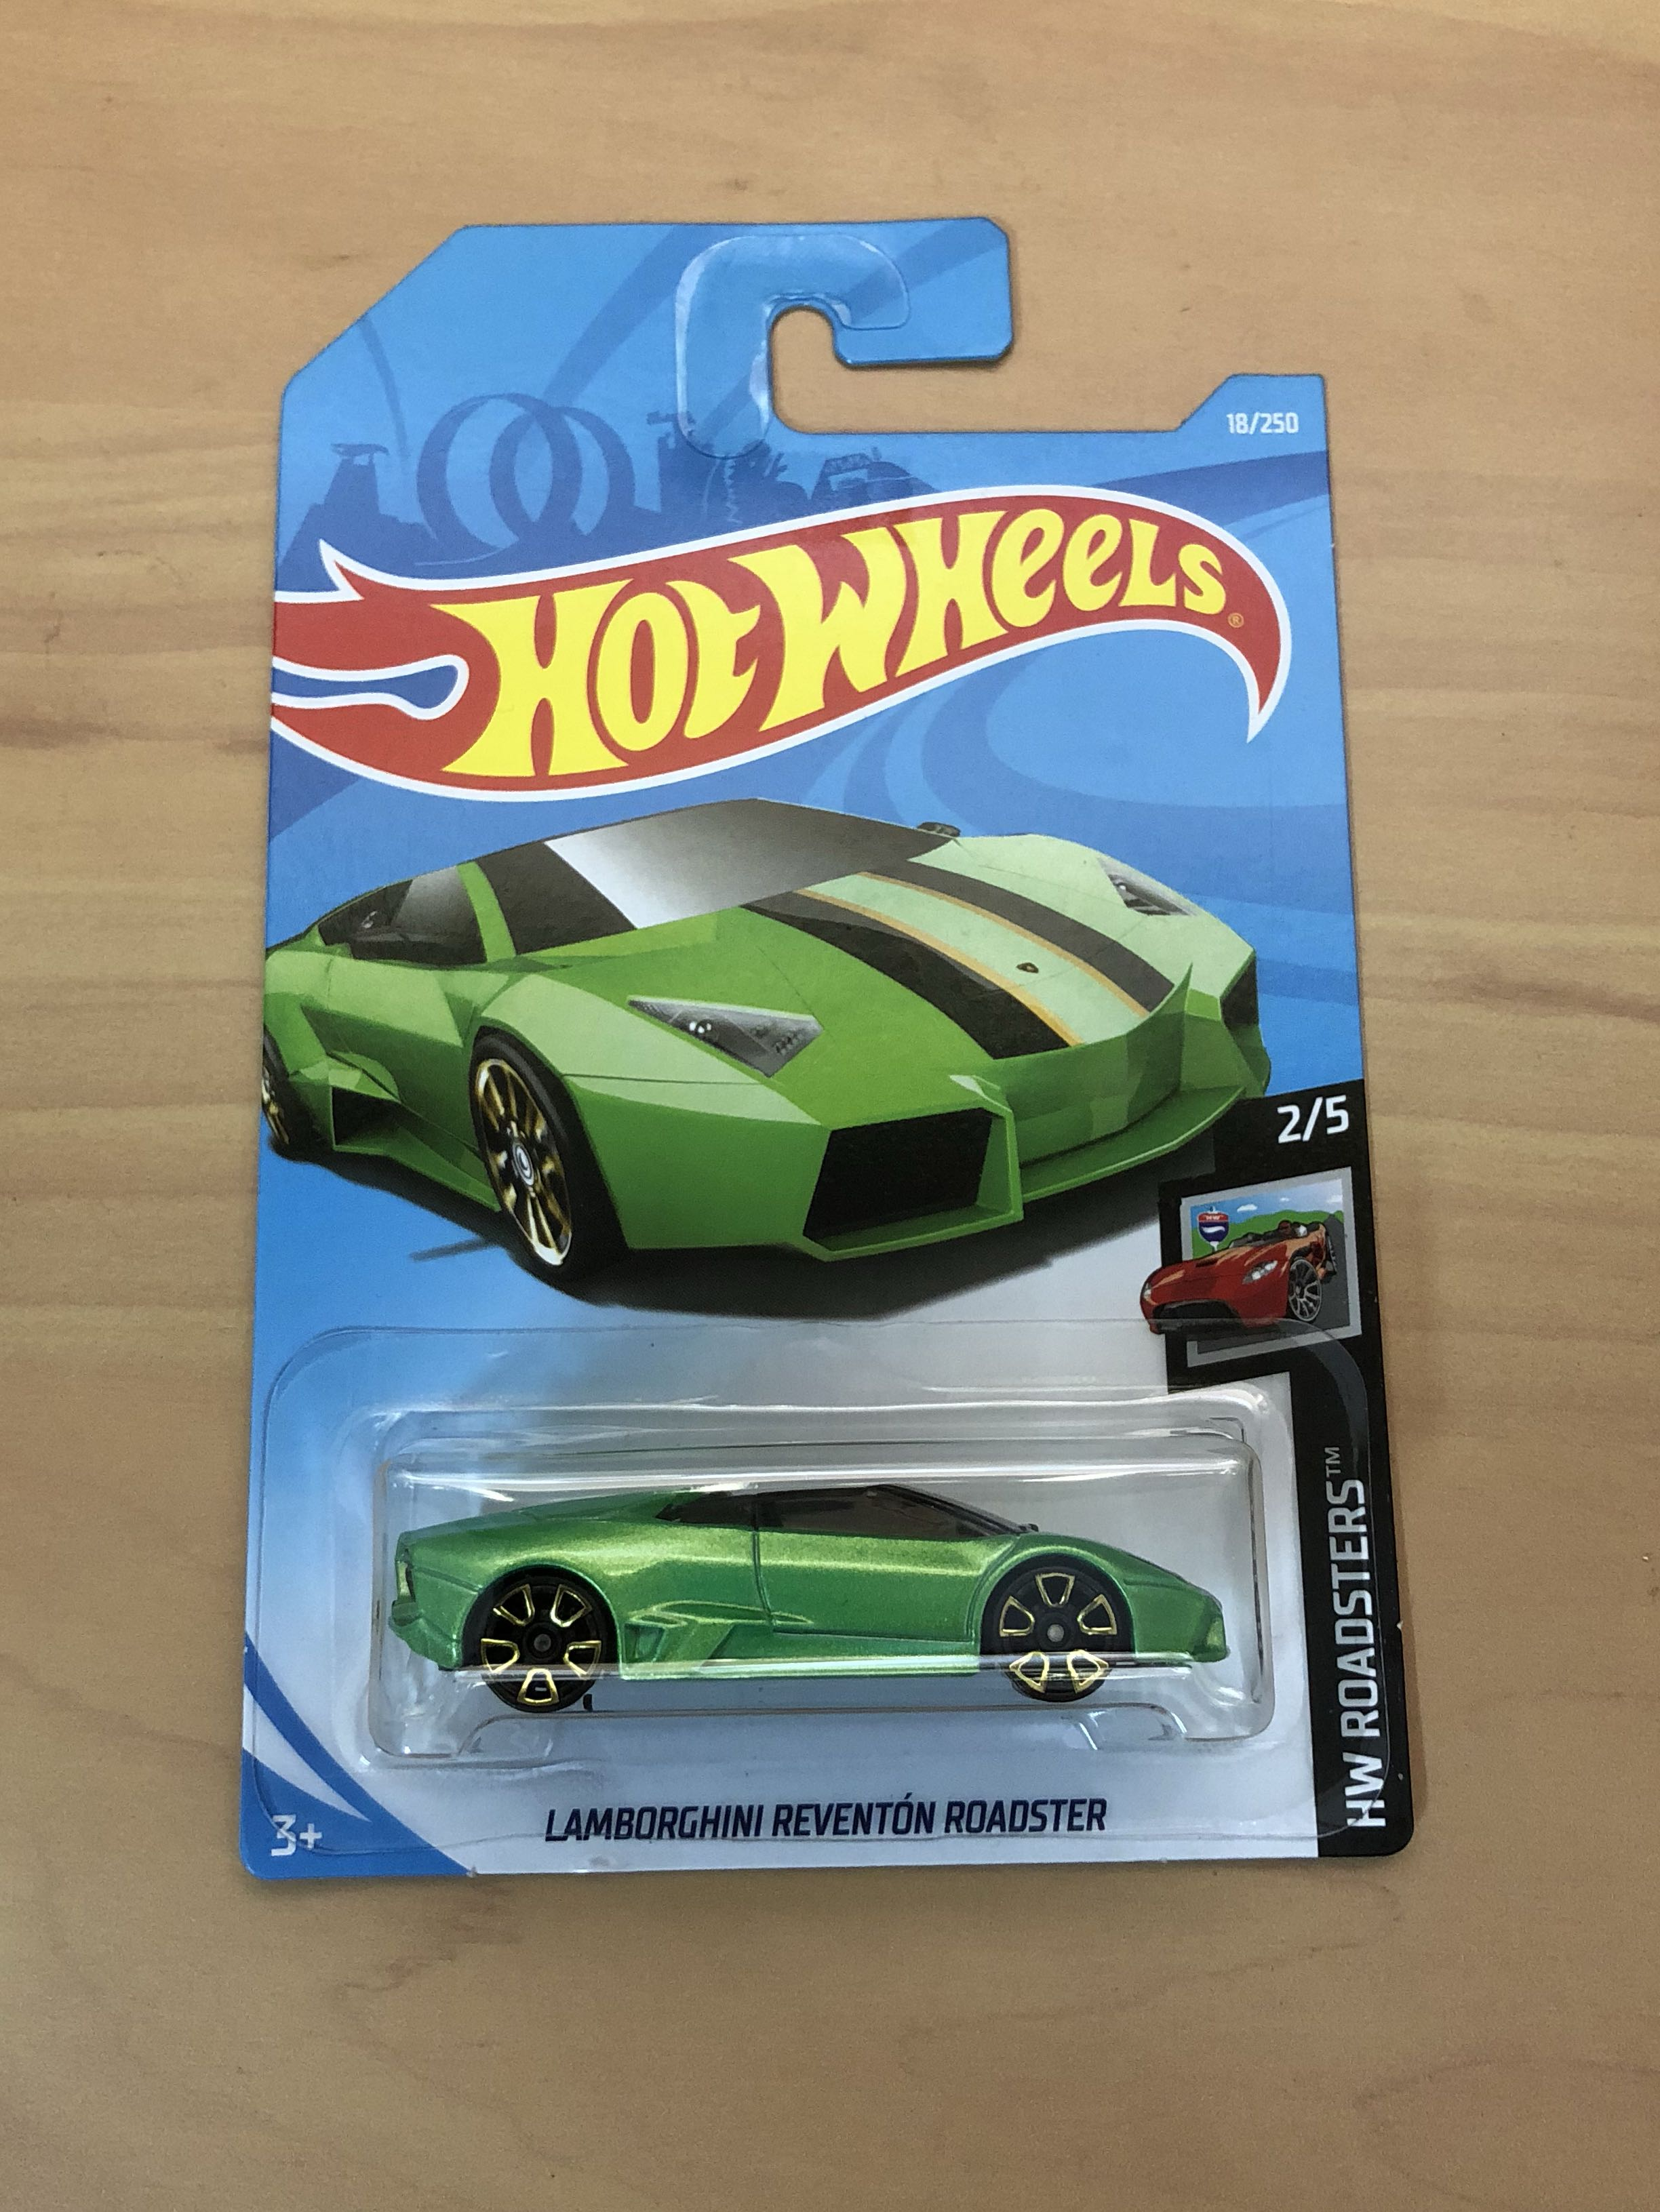 Hot Wheels Lamborghini Reventon Roadster Toys Games Others On